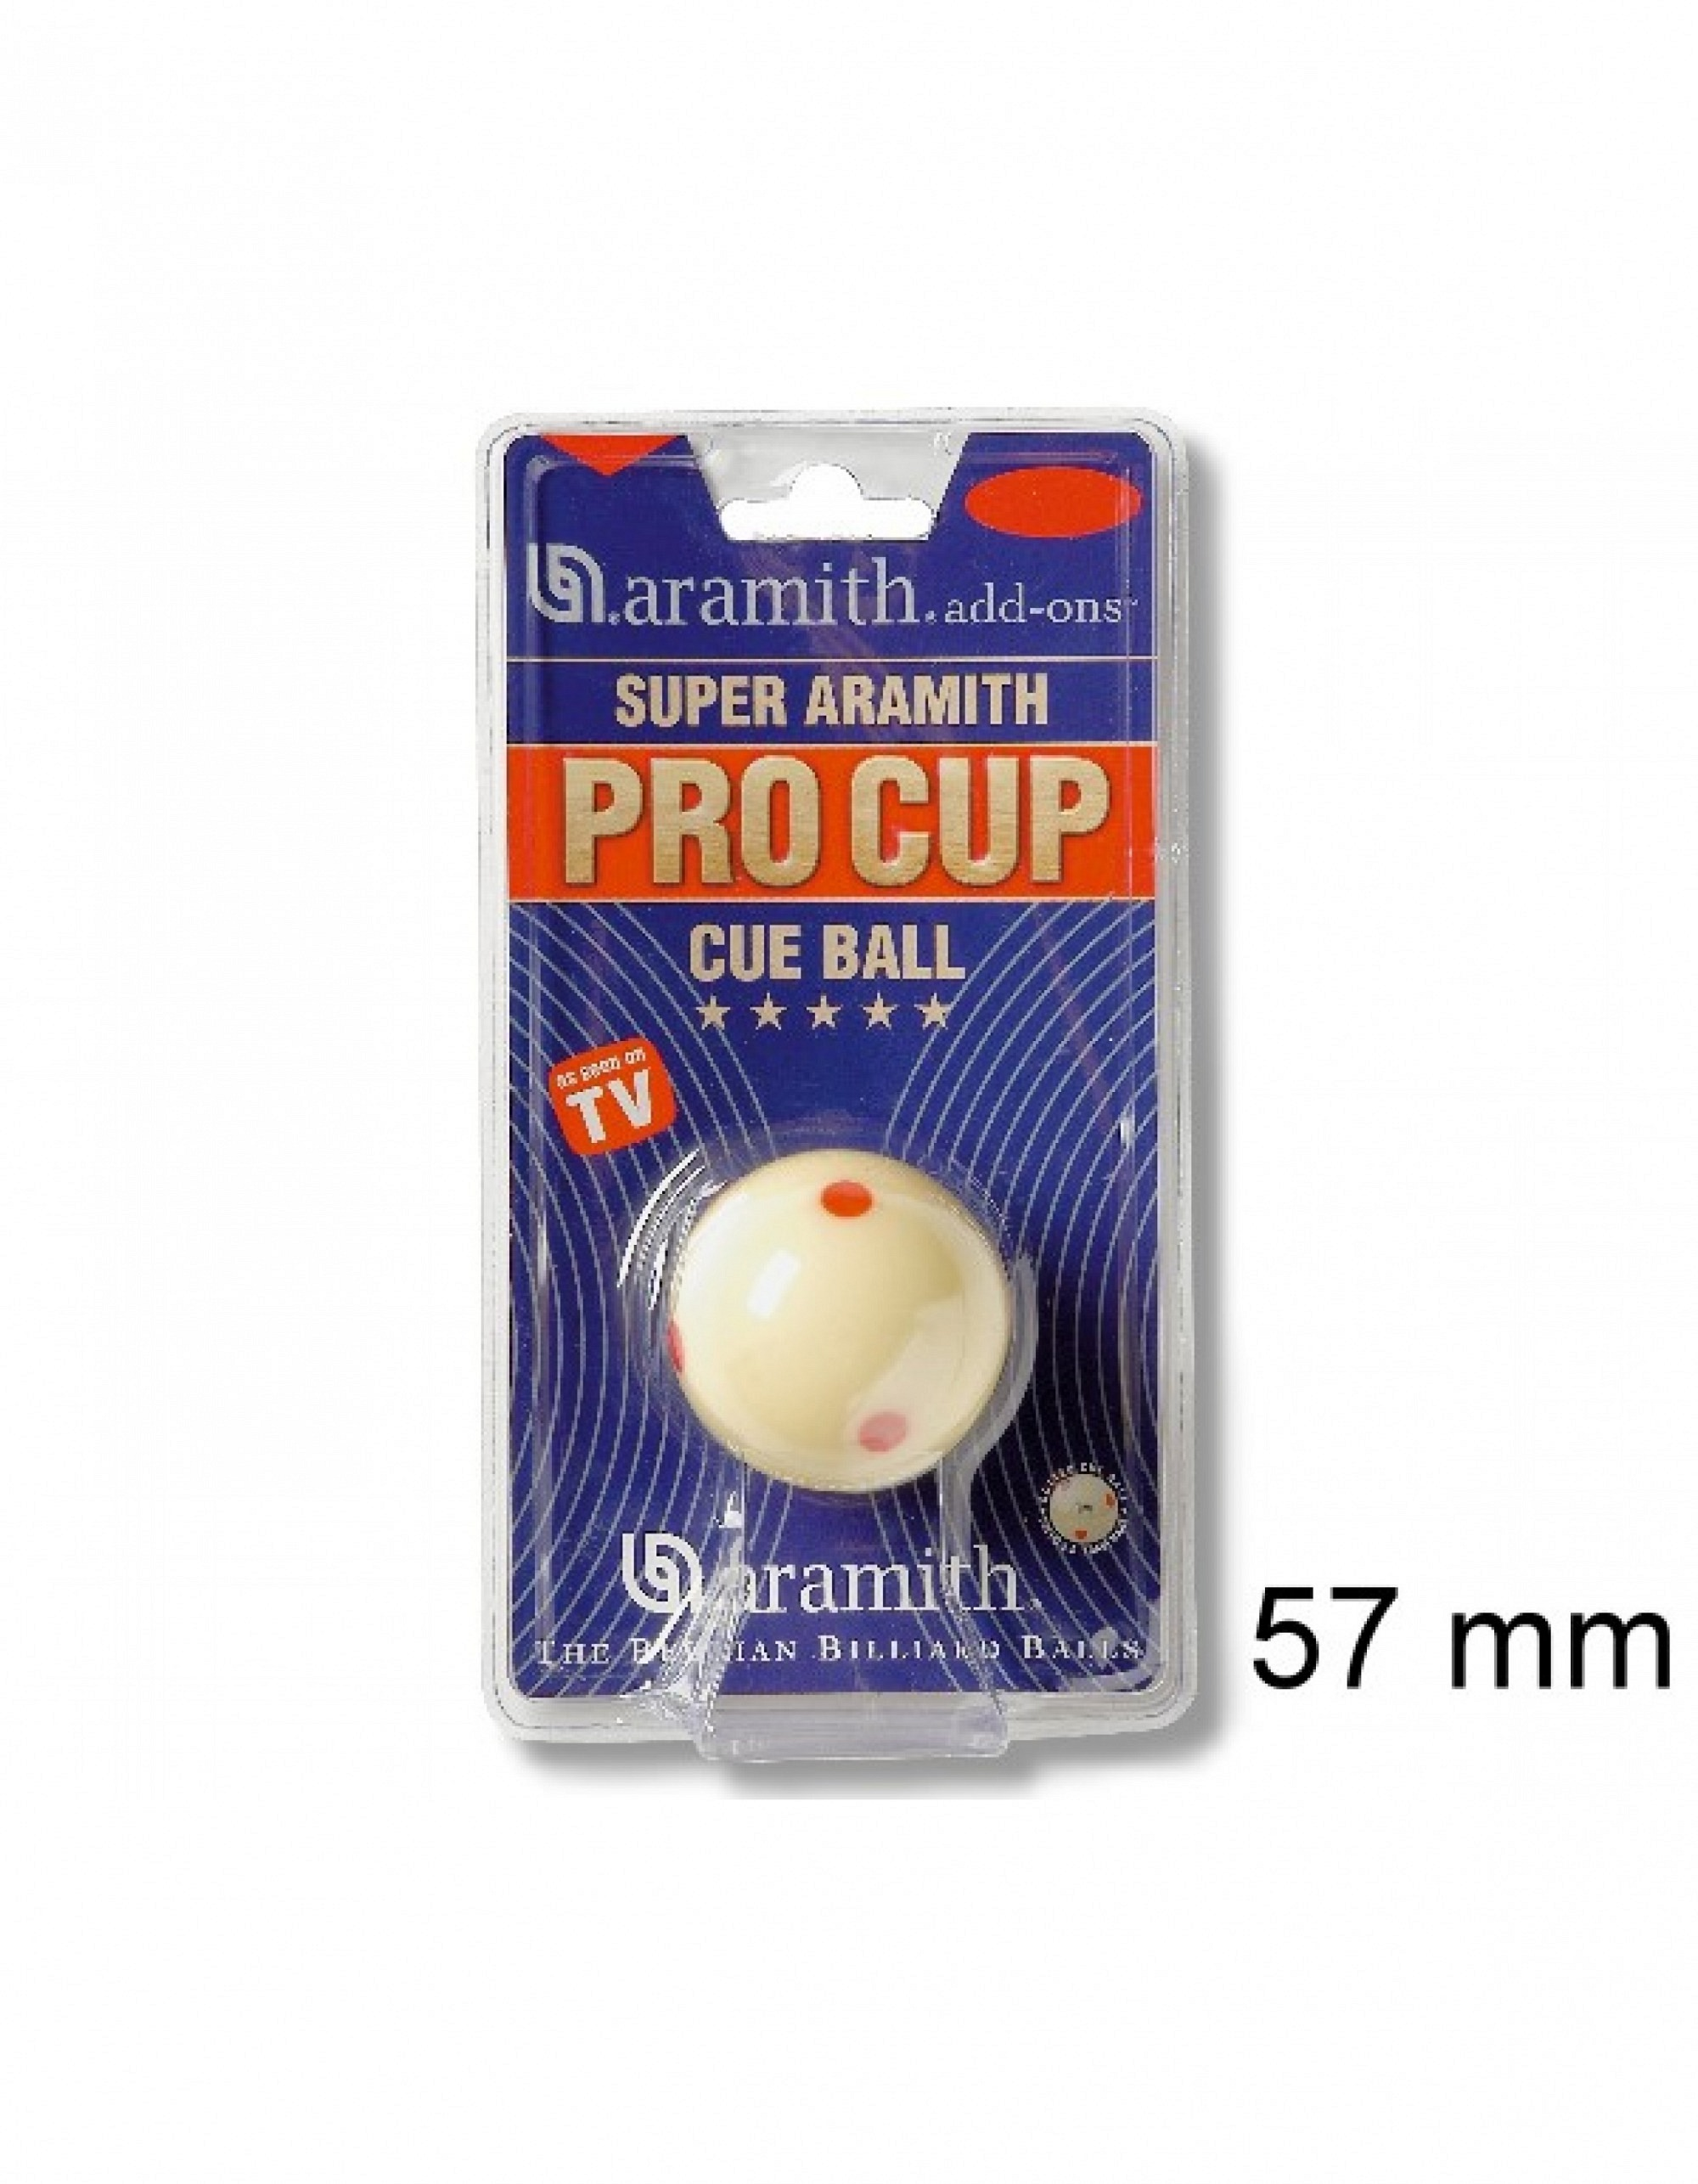 Pool-Spielball SUPER ARAMITH PRO CUP TV, 57, 2 mm